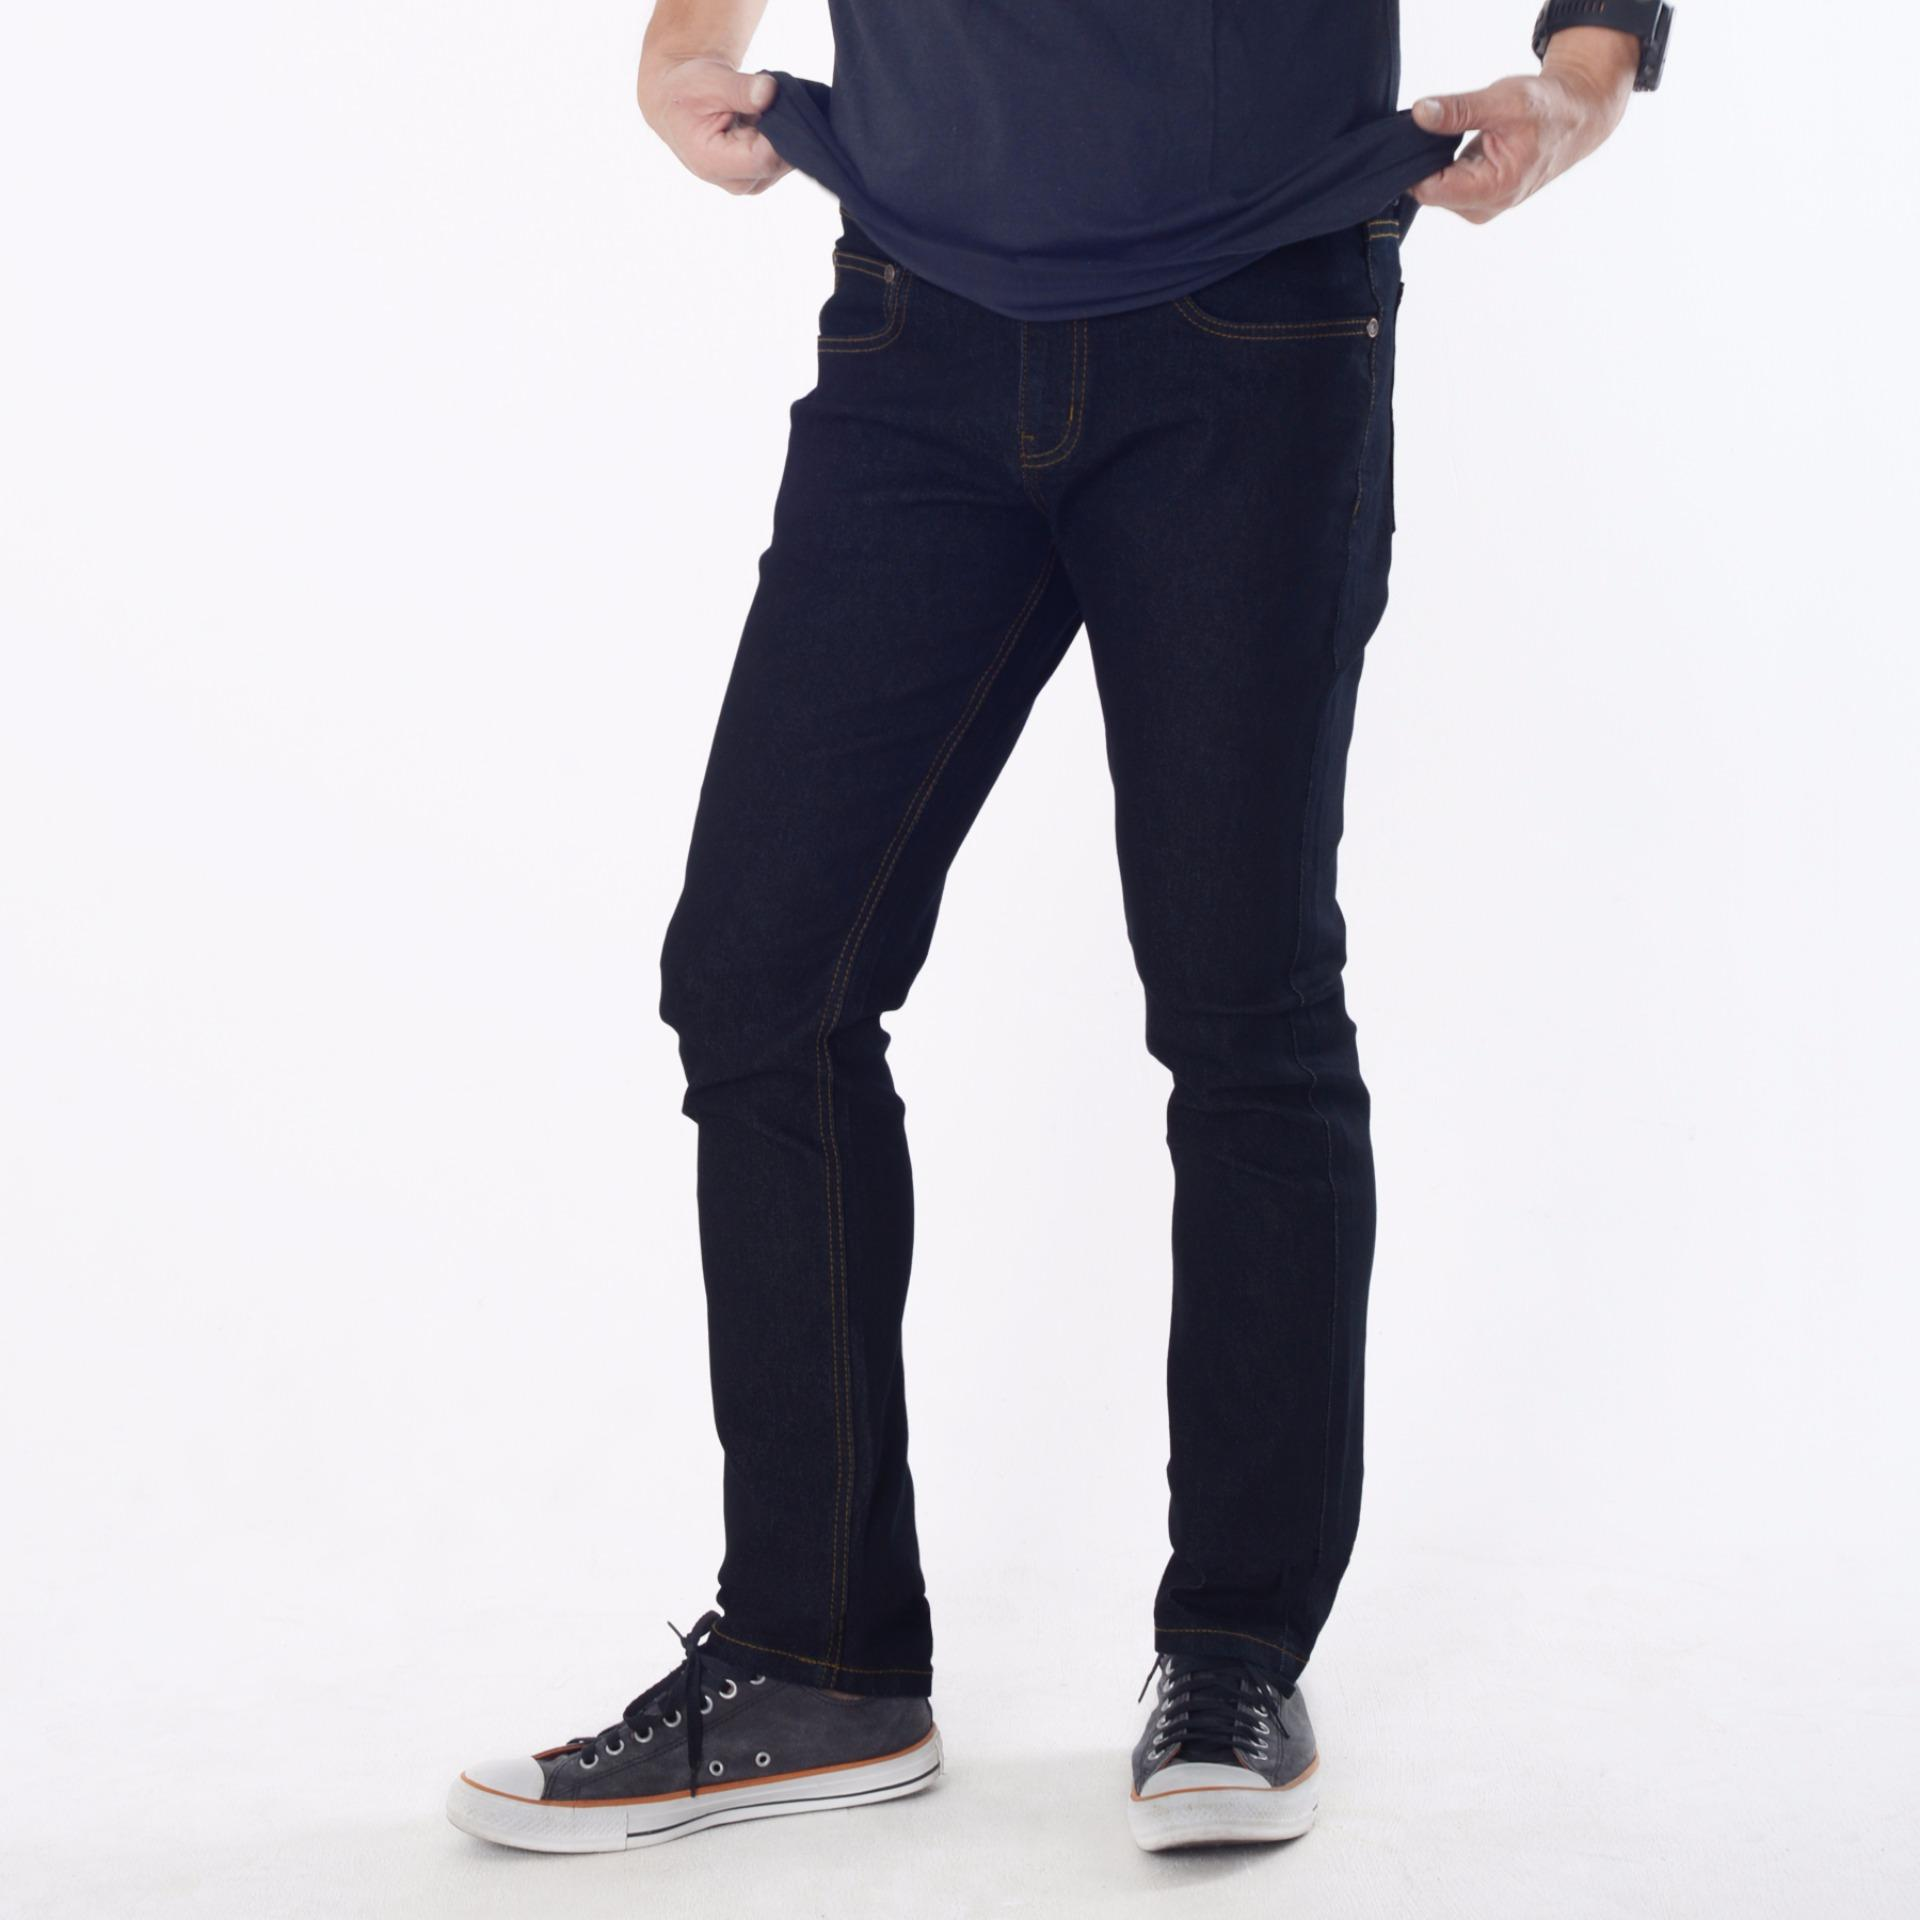 Beli Emba Jeans Celana Panjang Pria Bs 07 1 Morgan Slim Regular Fit Garment Wash Online